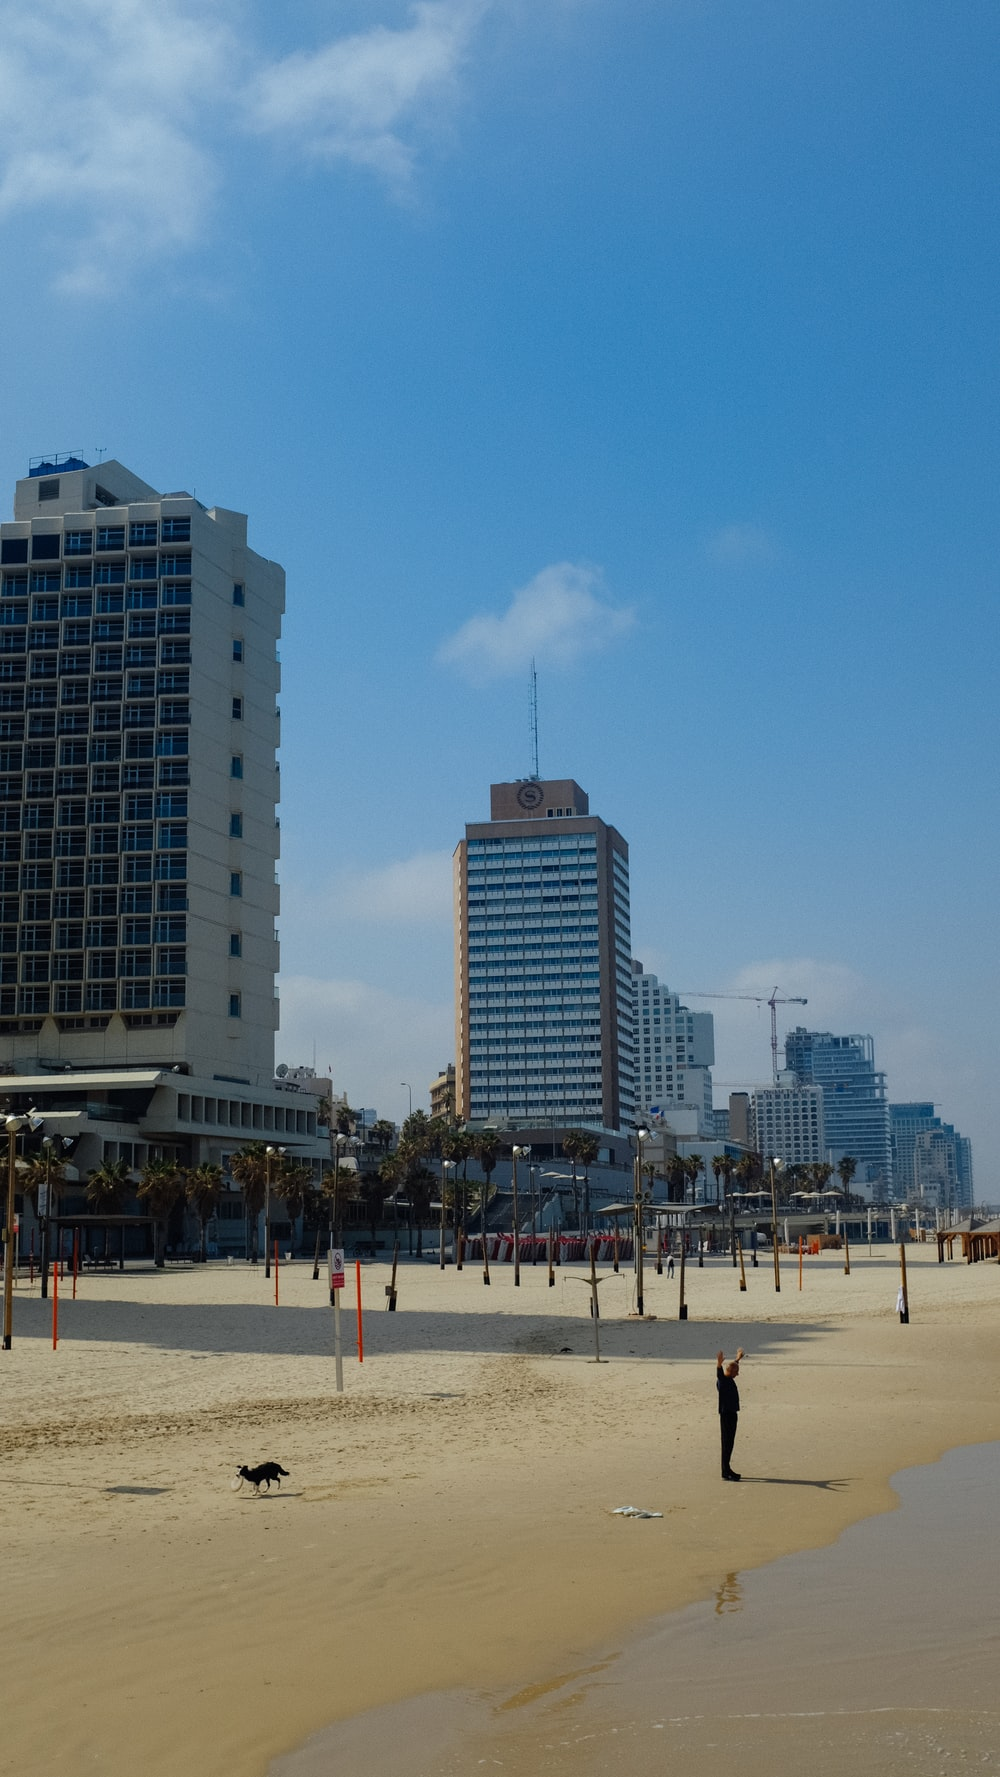 people on beach near high rise buildings during daytime